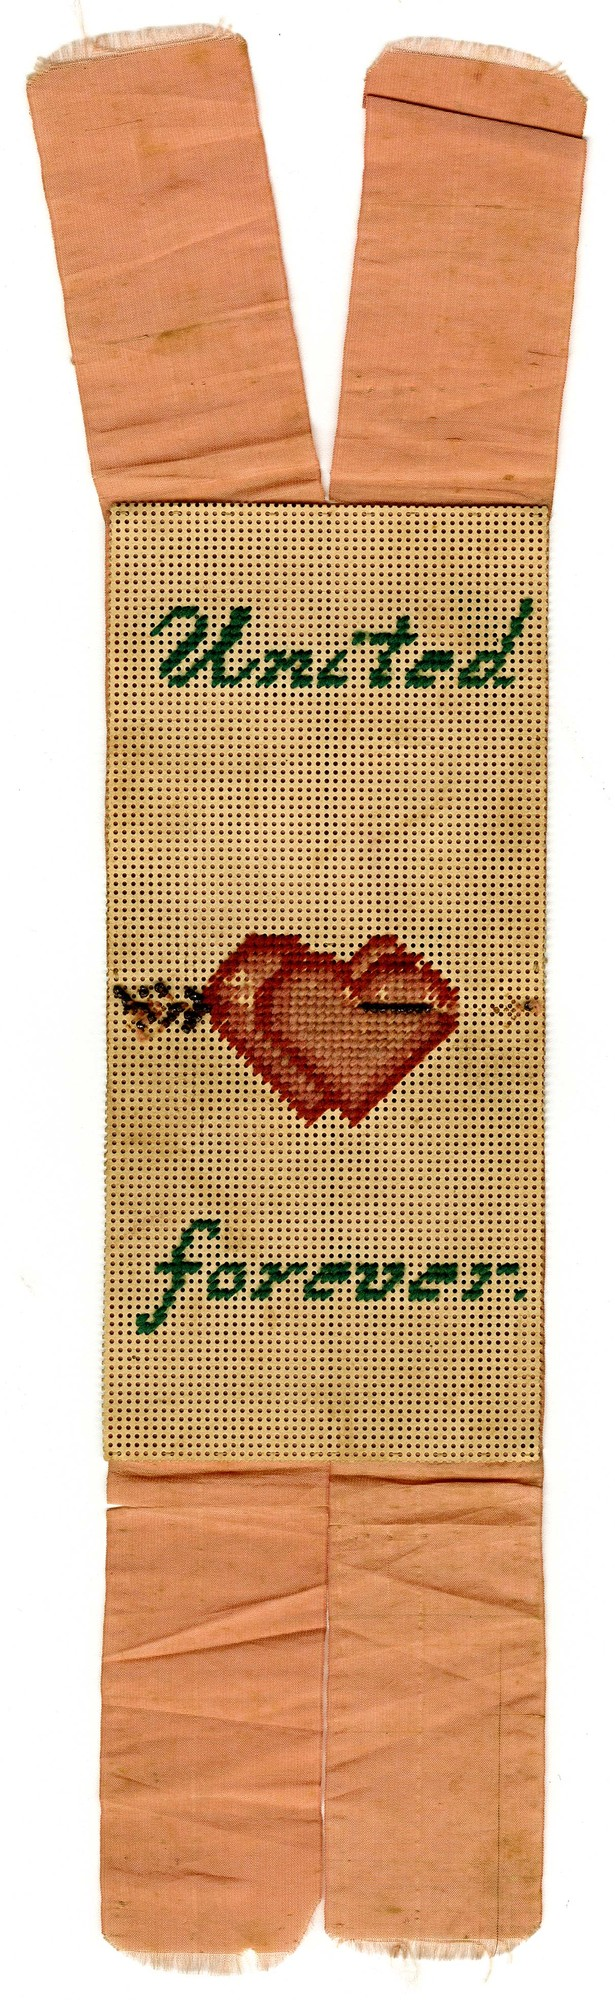 Ms1998_001_HuffHylton_Needlepoint.jpg